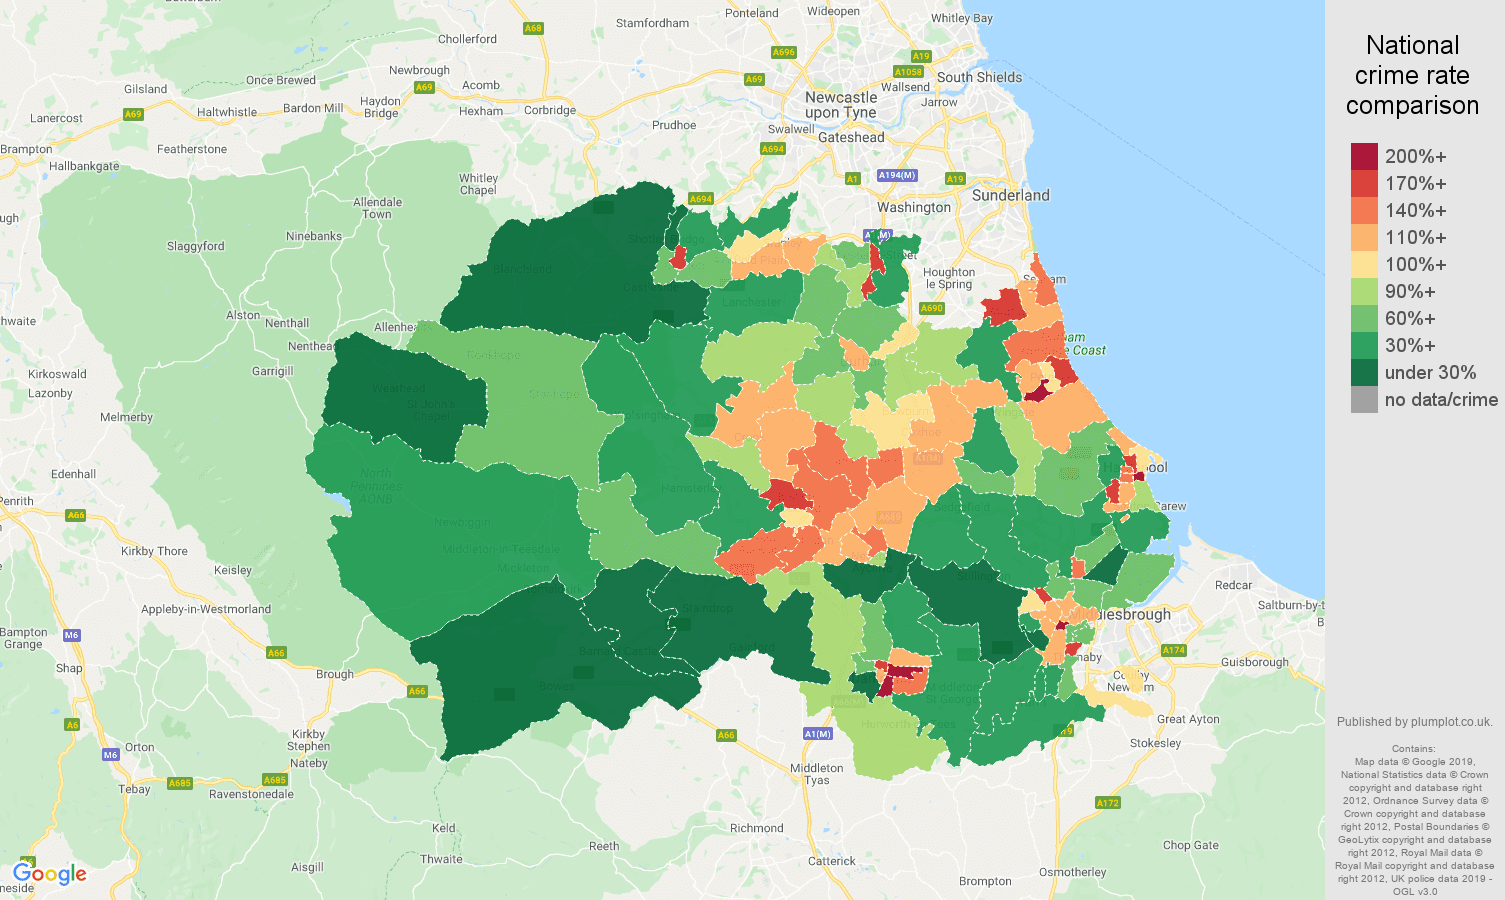 Durham county public order crime rate comparison map